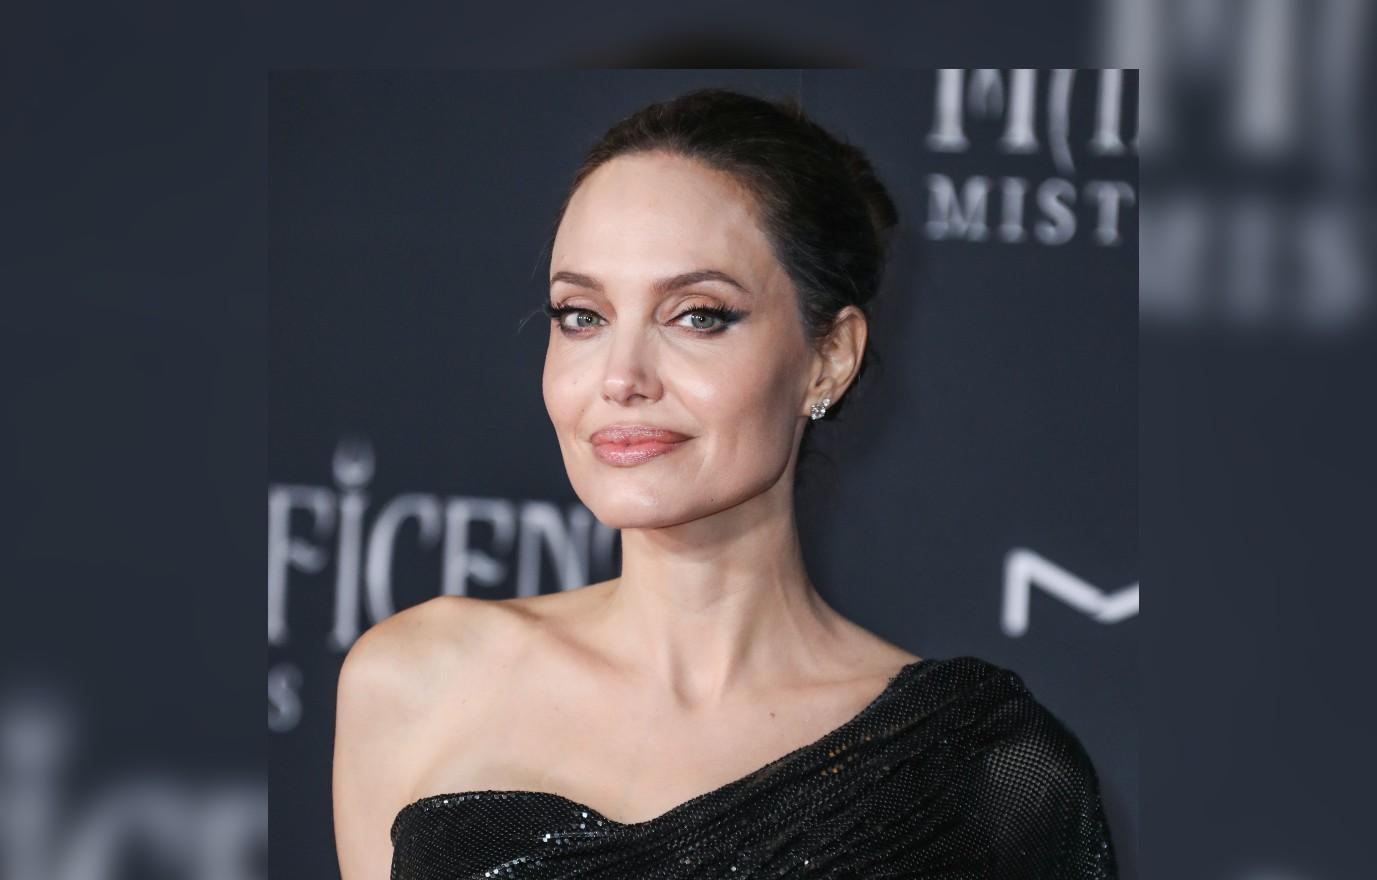 angelina jolie spotted entering ex hubbys dumbo digs with wine and no security in sight jonny lee miller divorce couples hollywood